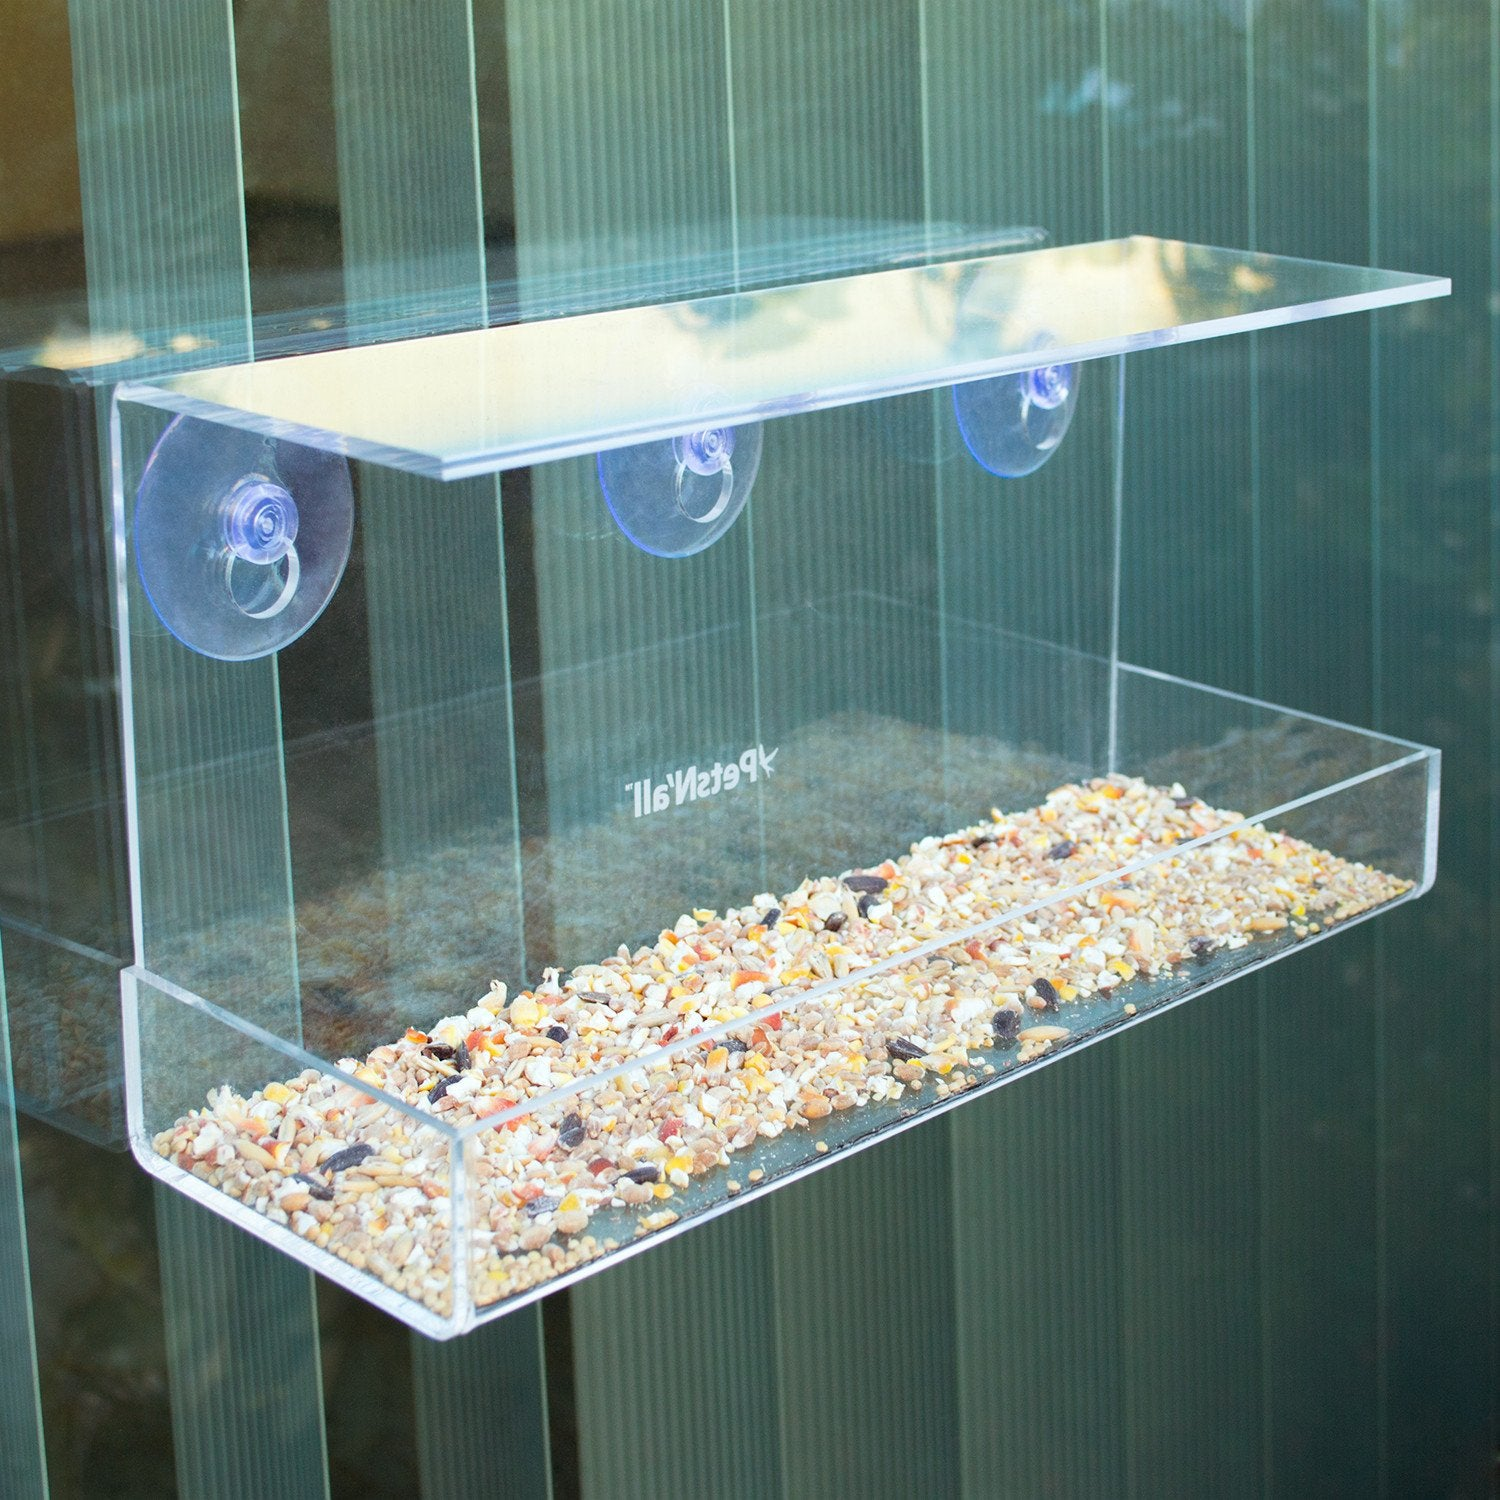 bird anti acrylic seeds feeder tidy drawer spread product locker no mess food with bottom feeders